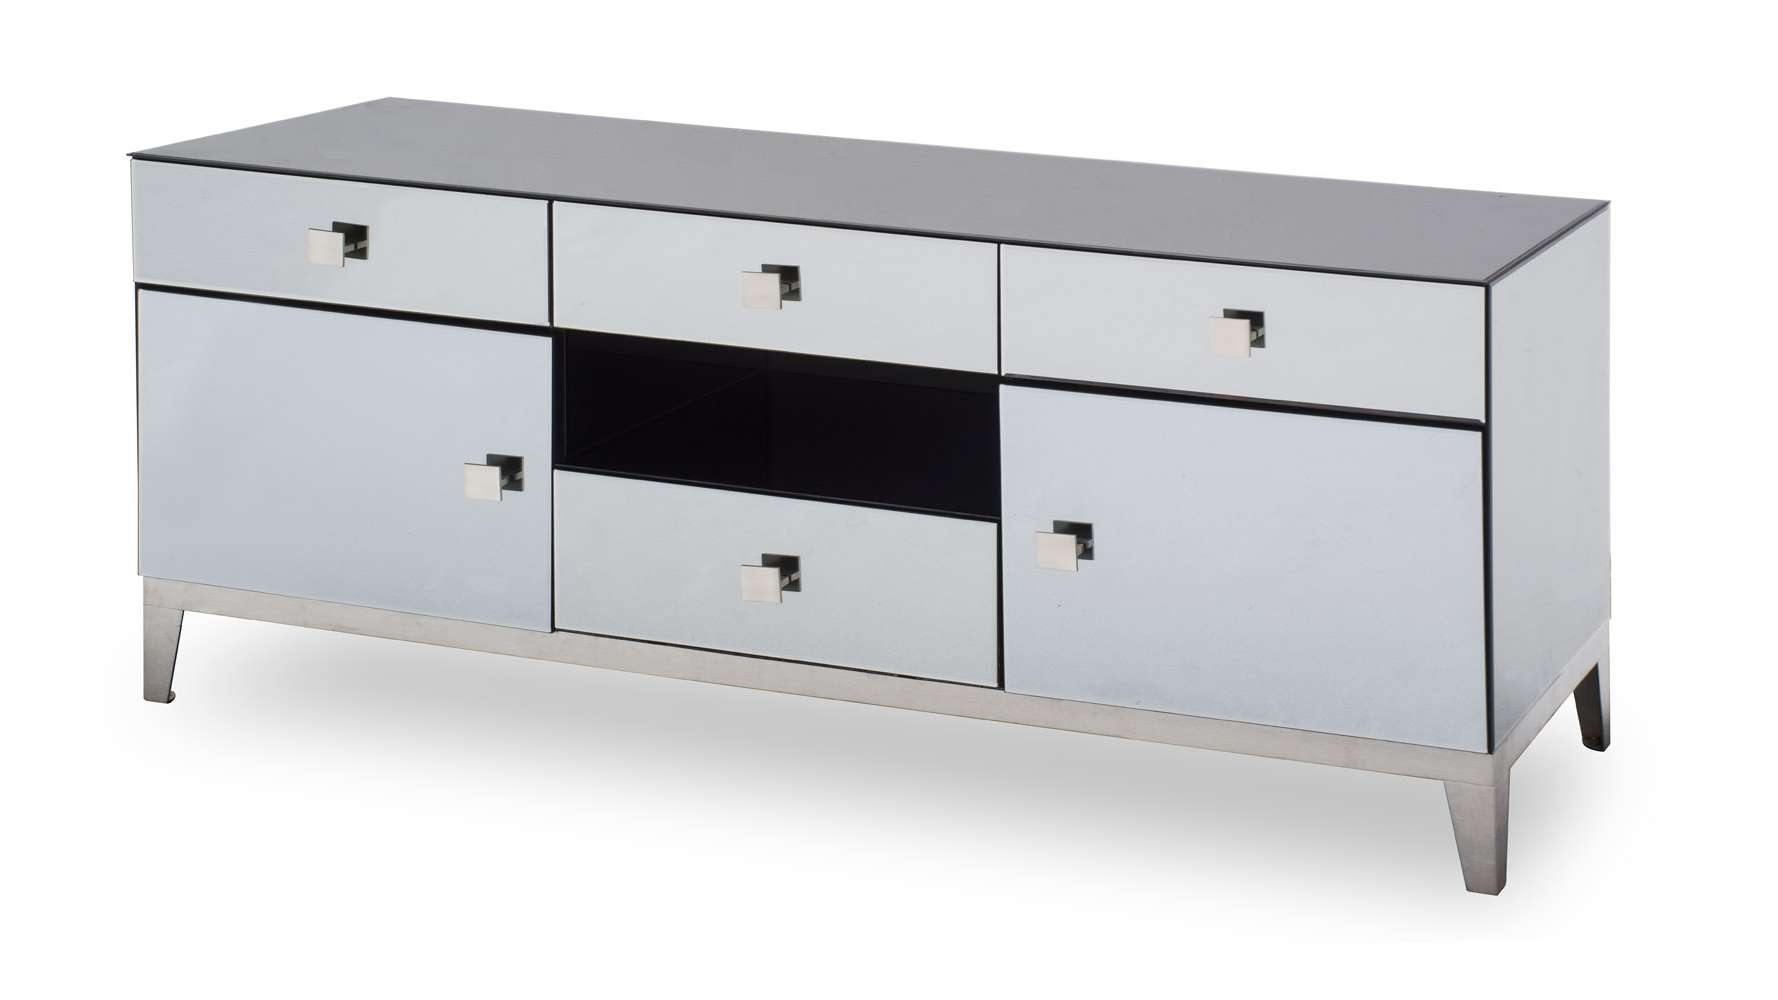 Home Design : Pretty Mirror Tv Stand Modern Grey Mirrored Glass For Mirrored Tv Stands (View 3 of 15)